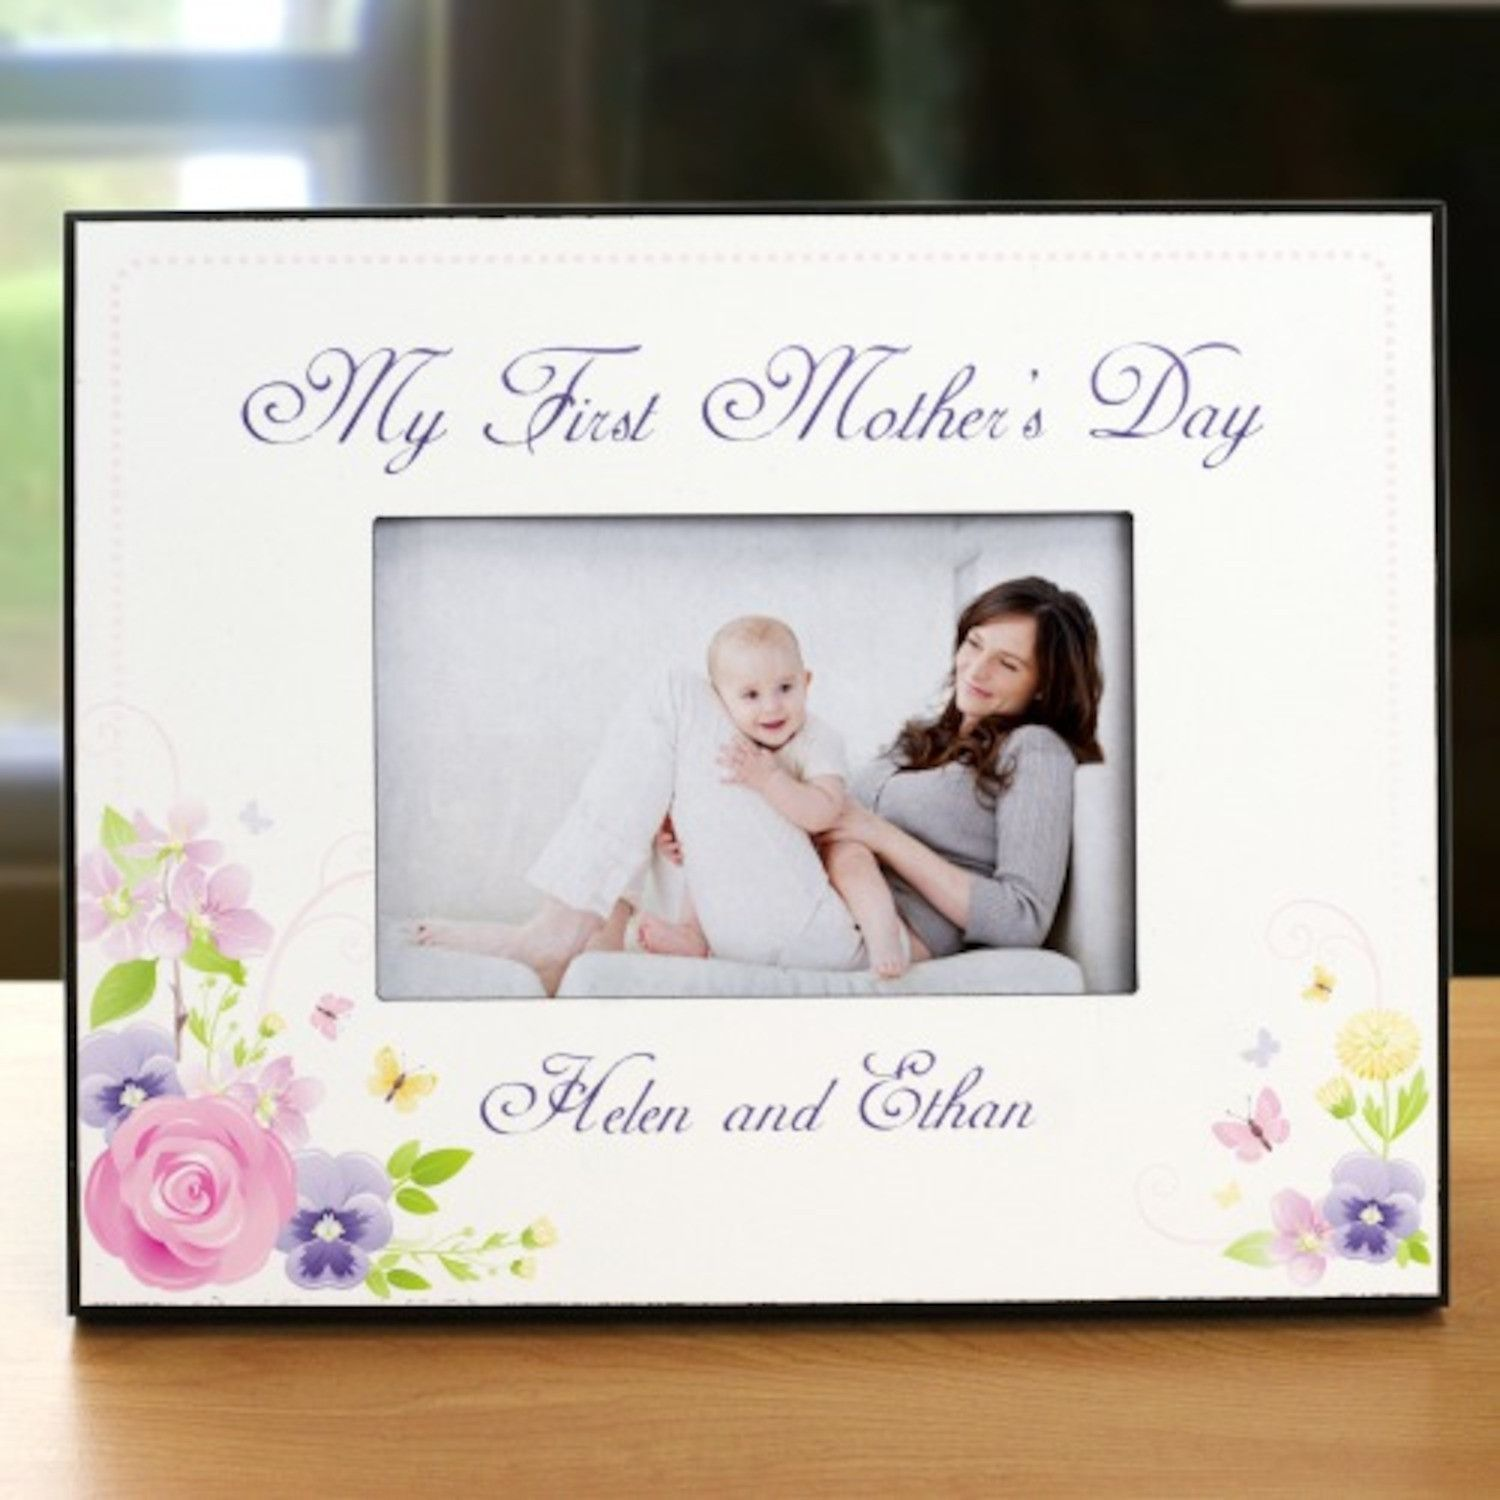 Personalized My First Mothers Day Printed Frame | Products ...